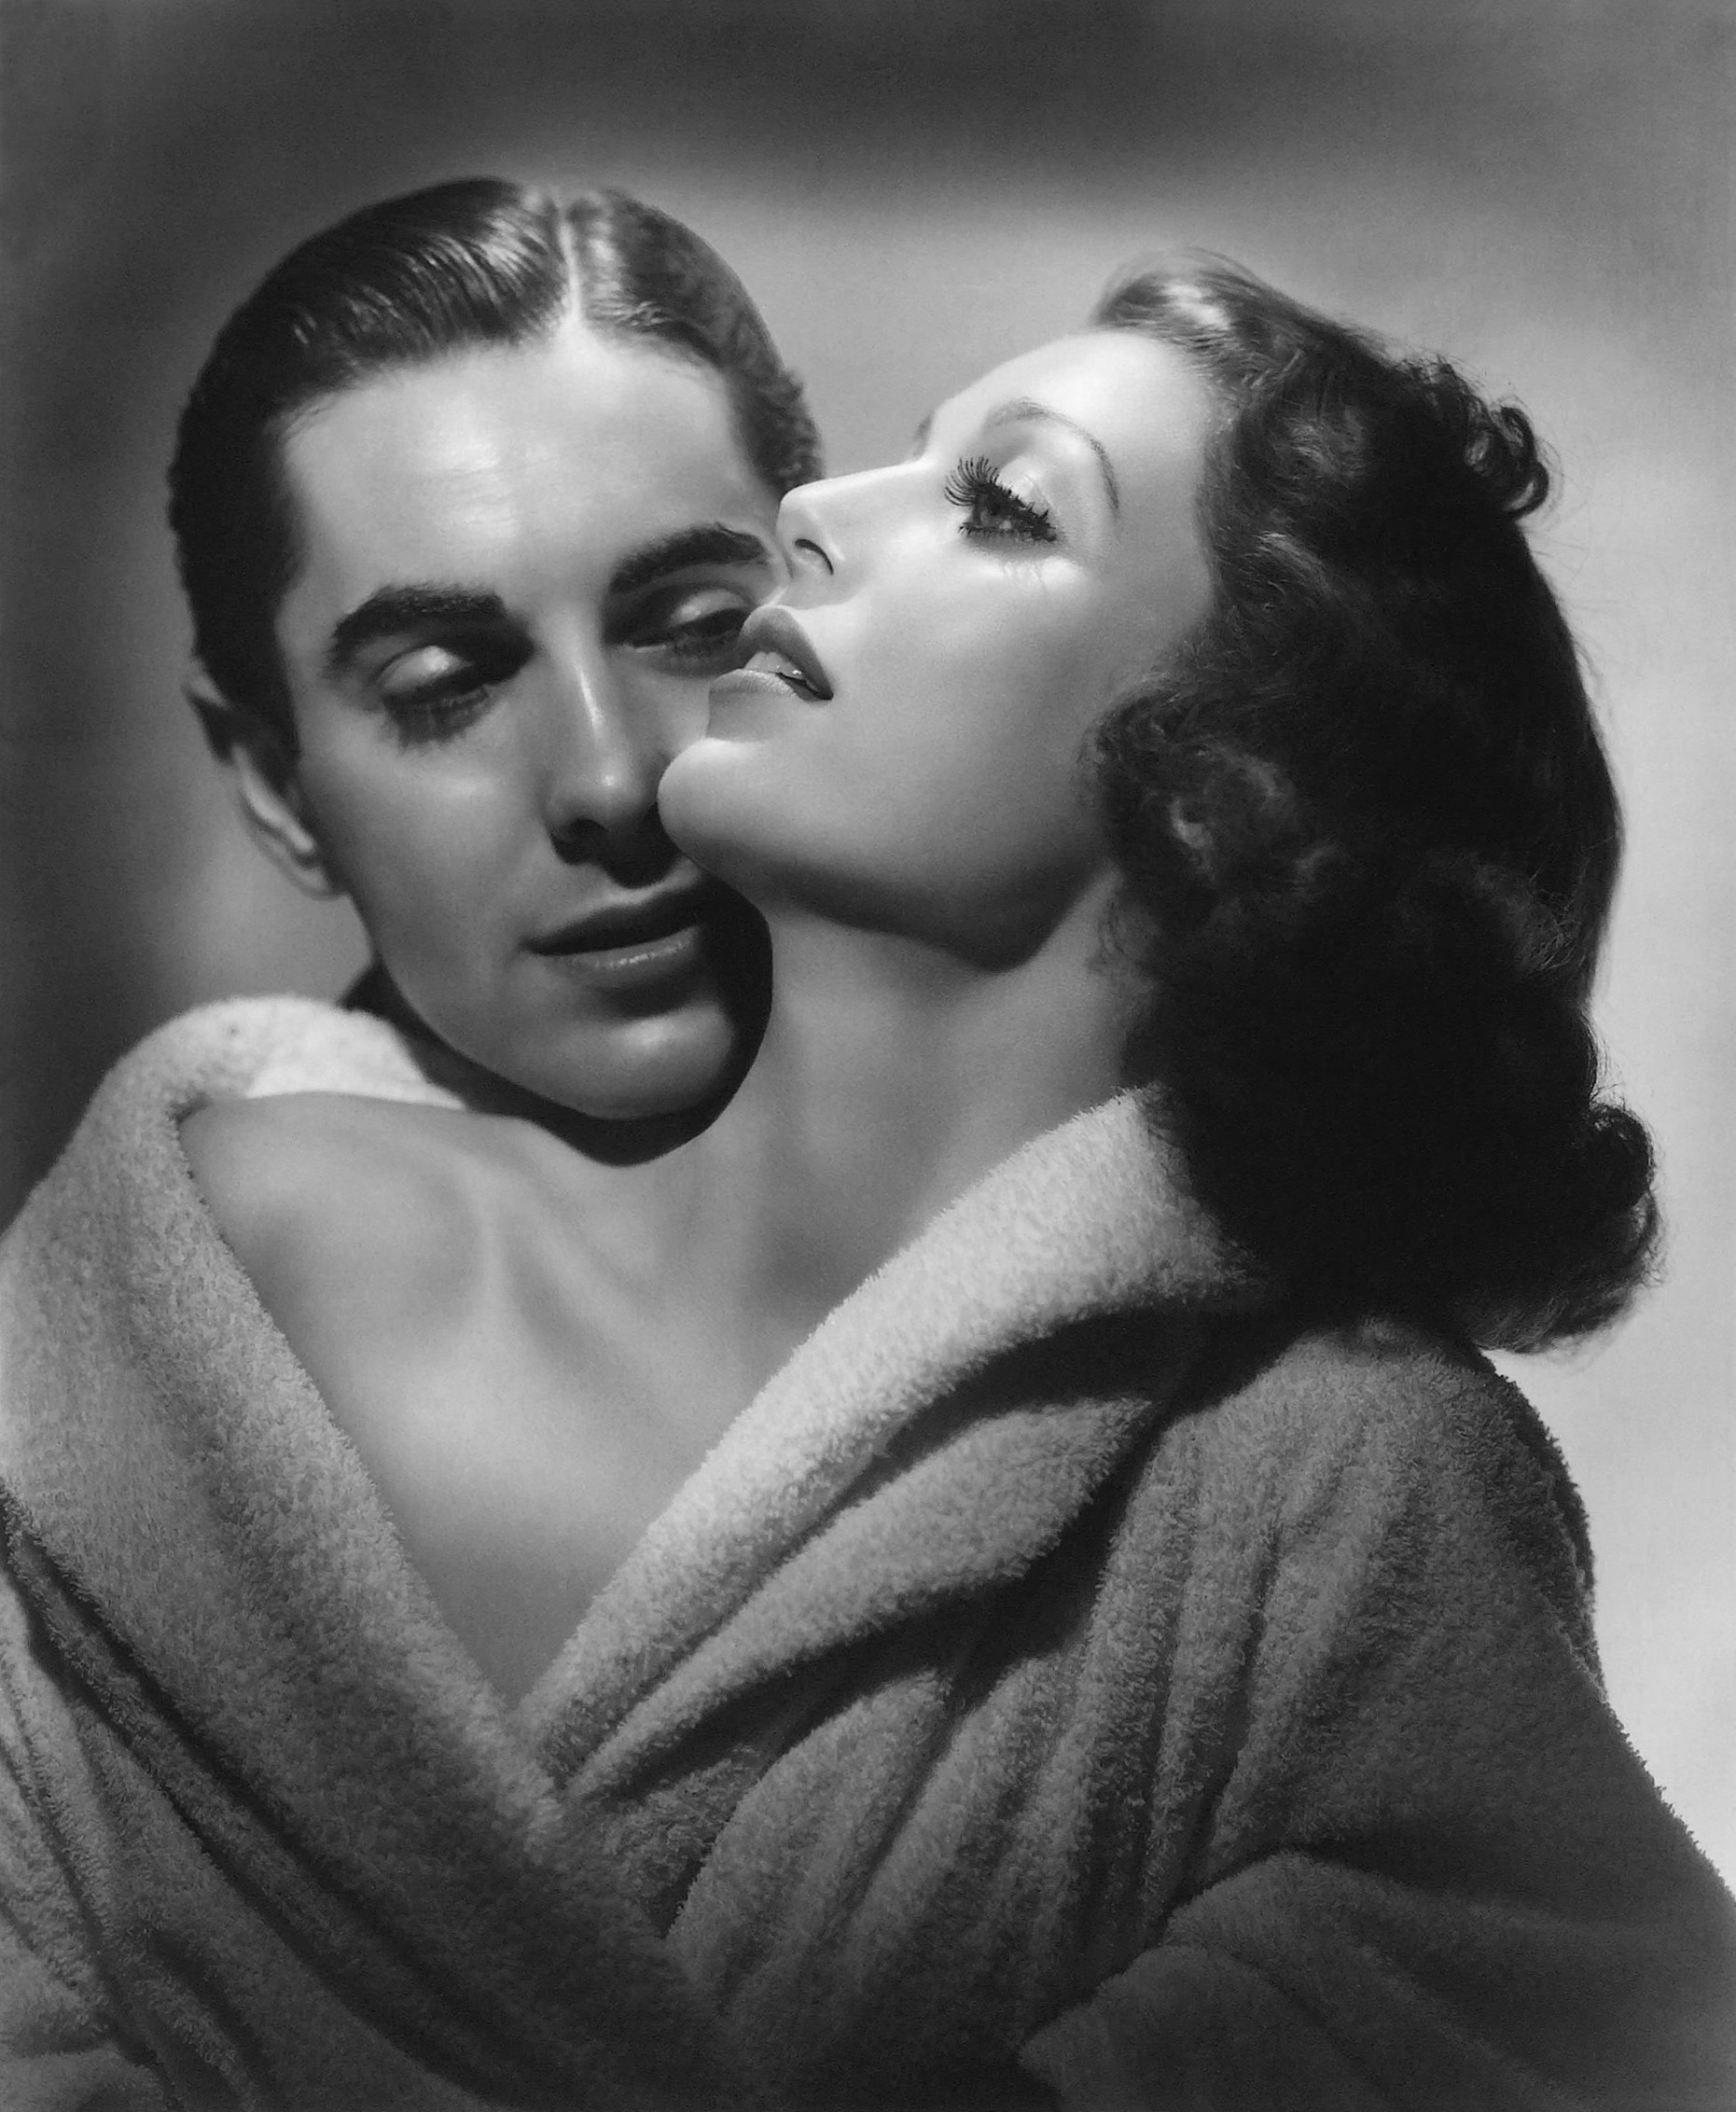 Tyrone Power, Jr. in Love is News With Loretta Young